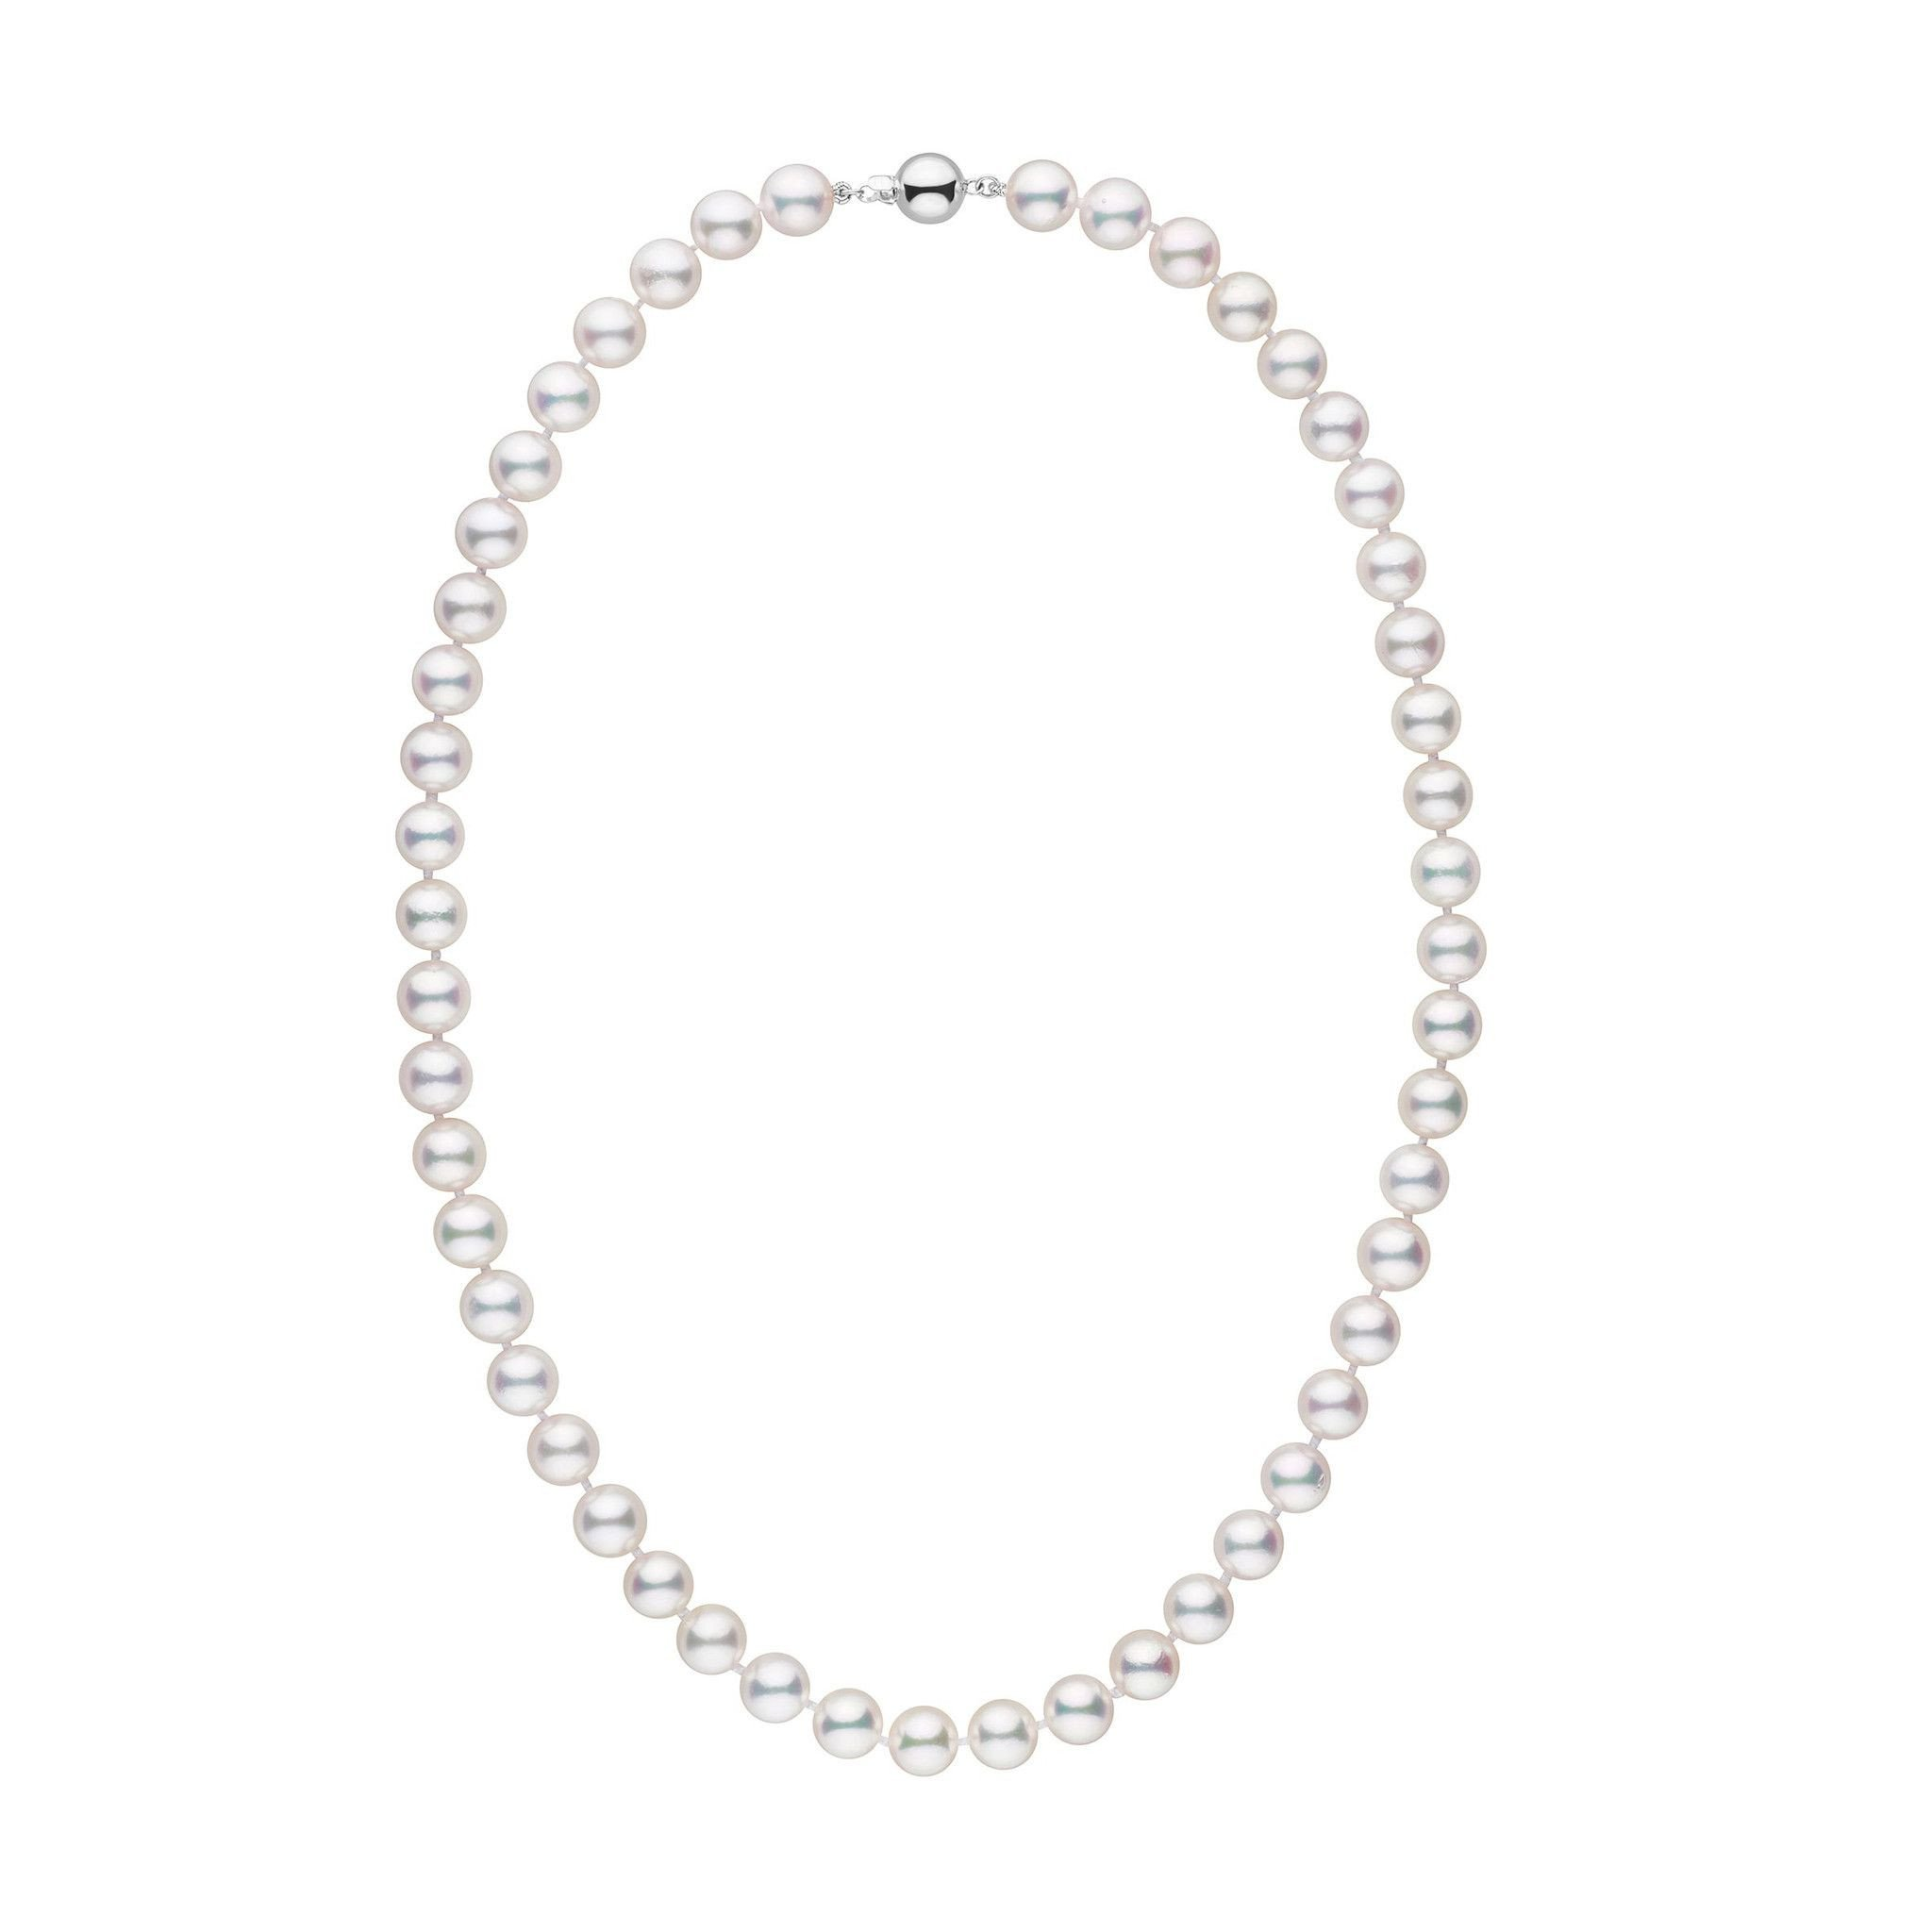 8.0-8.5 mm 18 inch AAA White Akoya Cultured Pearl Necklace - 14K White Gold by Pearl Paradise (Image #1)